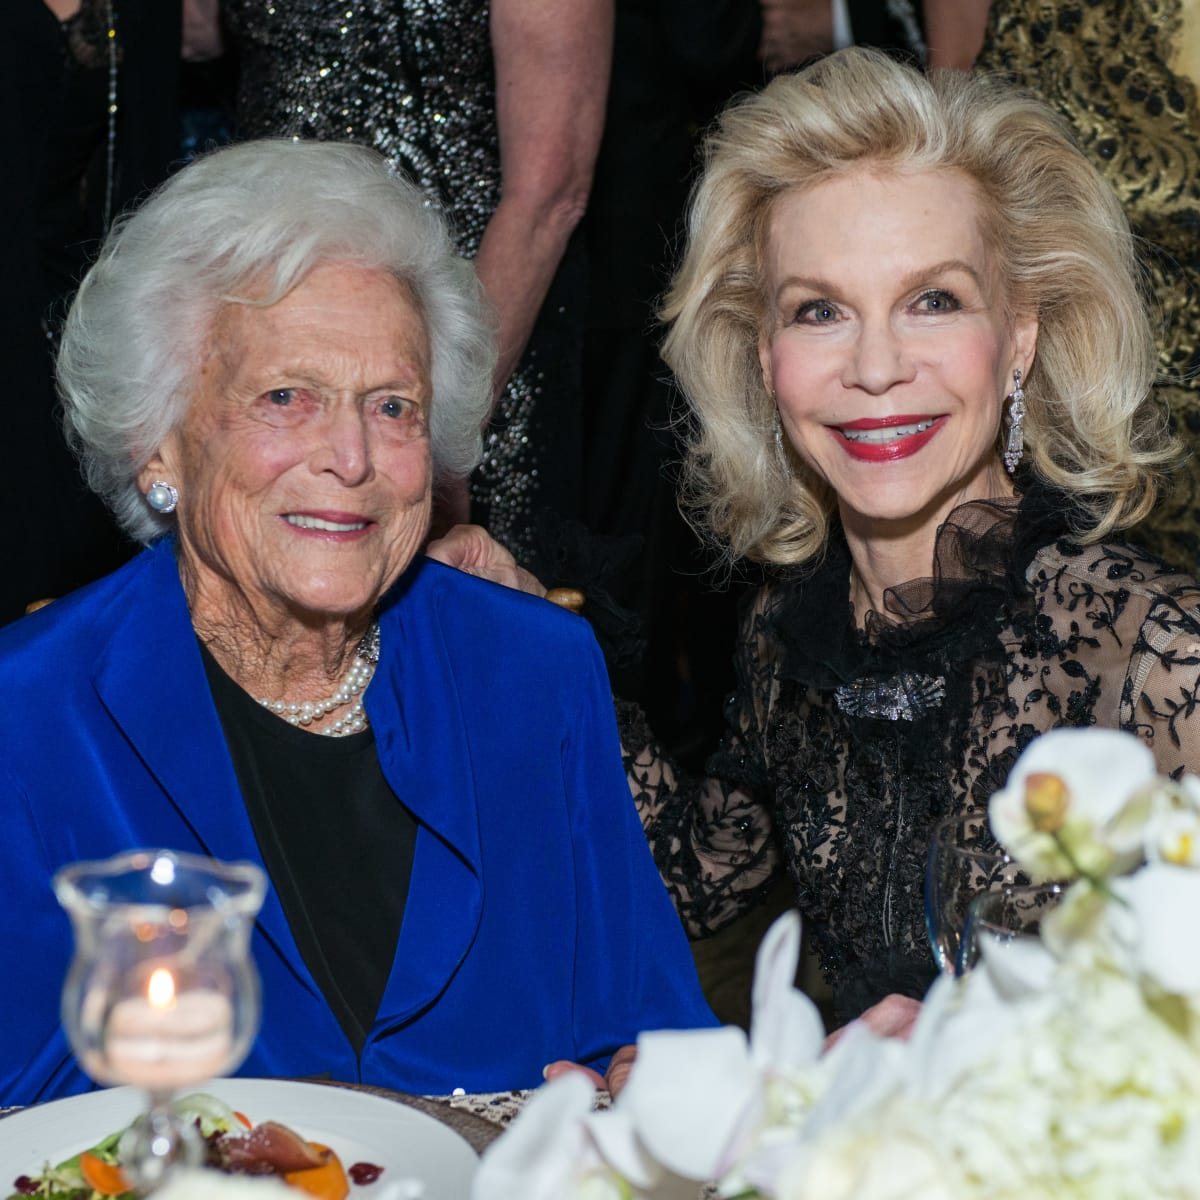 News, Shelby, UNICEF gala, Nov. 2015, Barbara Bush, Lynn Wyatt